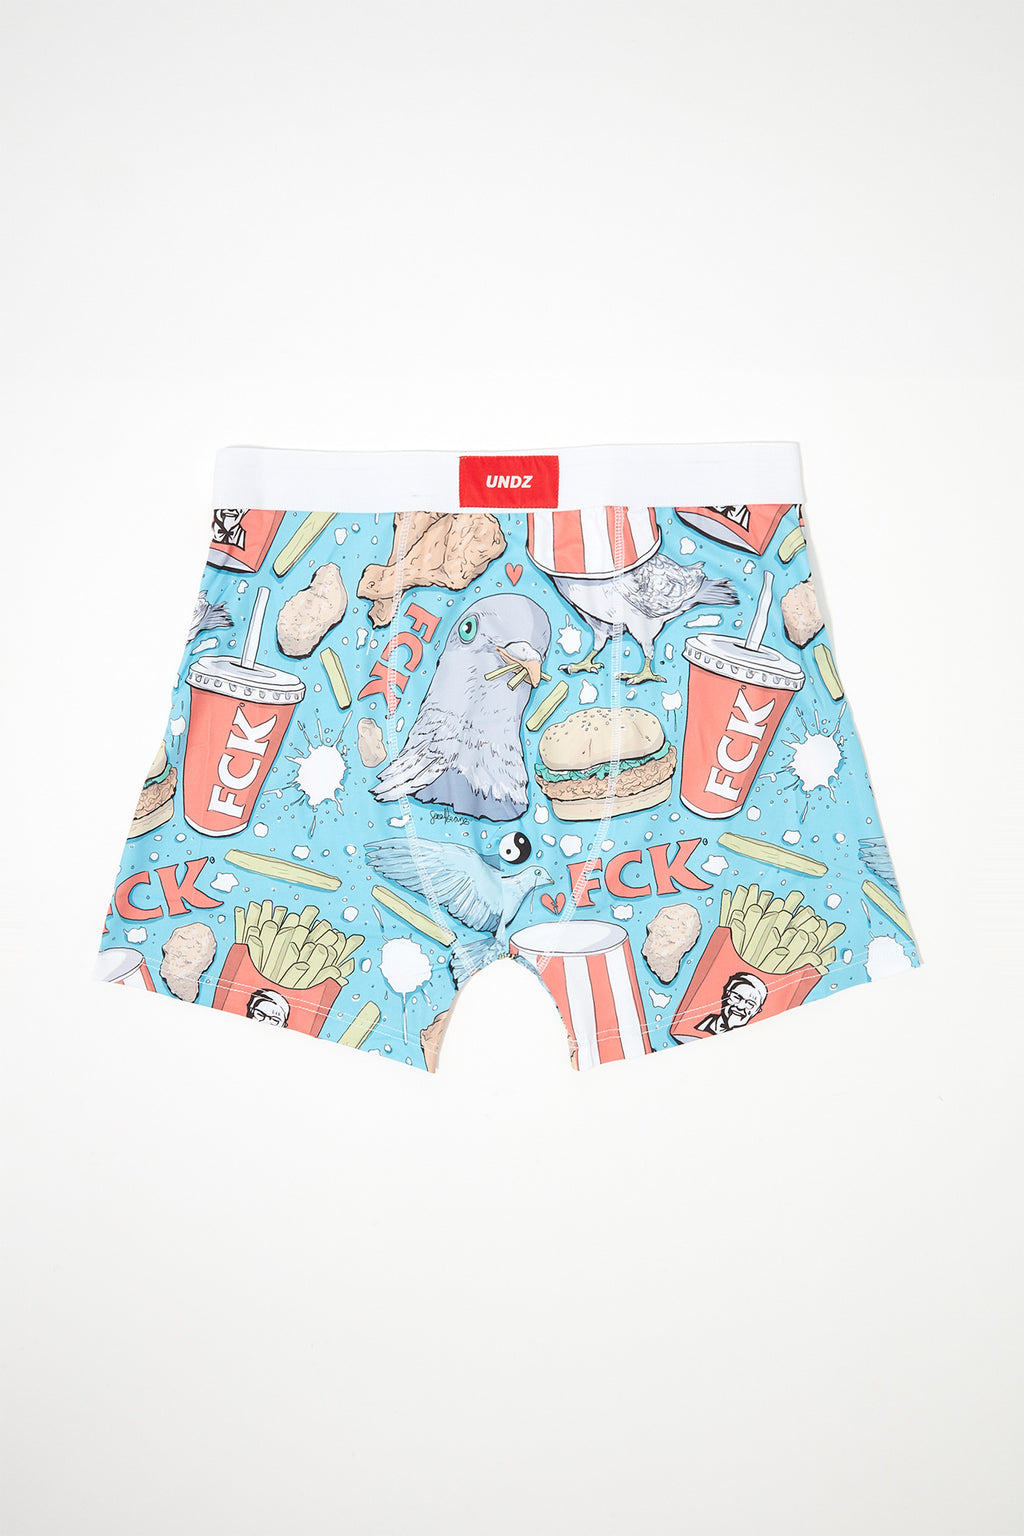 UNDZ Mens KFC Sarah Bean Boxer Brief